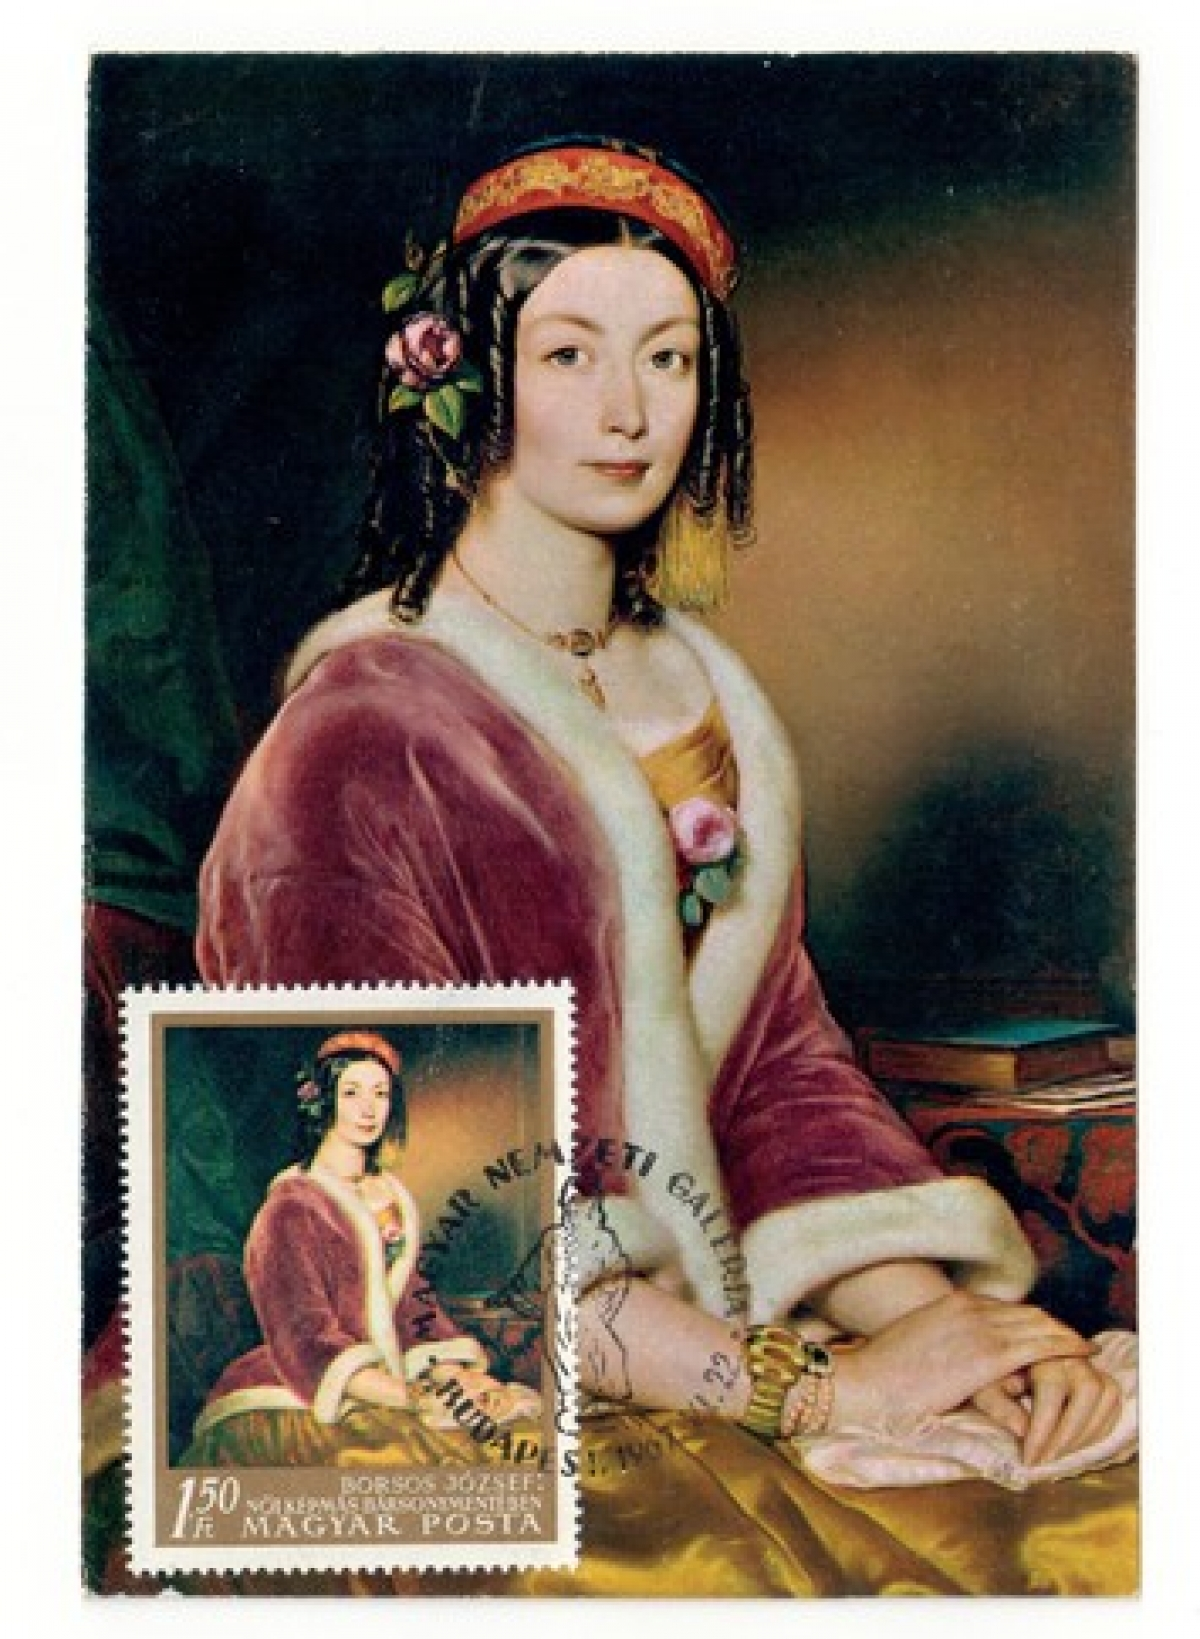 Postcard with a nineteenth century painting of a woman wearing a velvet jacket, with a stamp depicting the same painting.